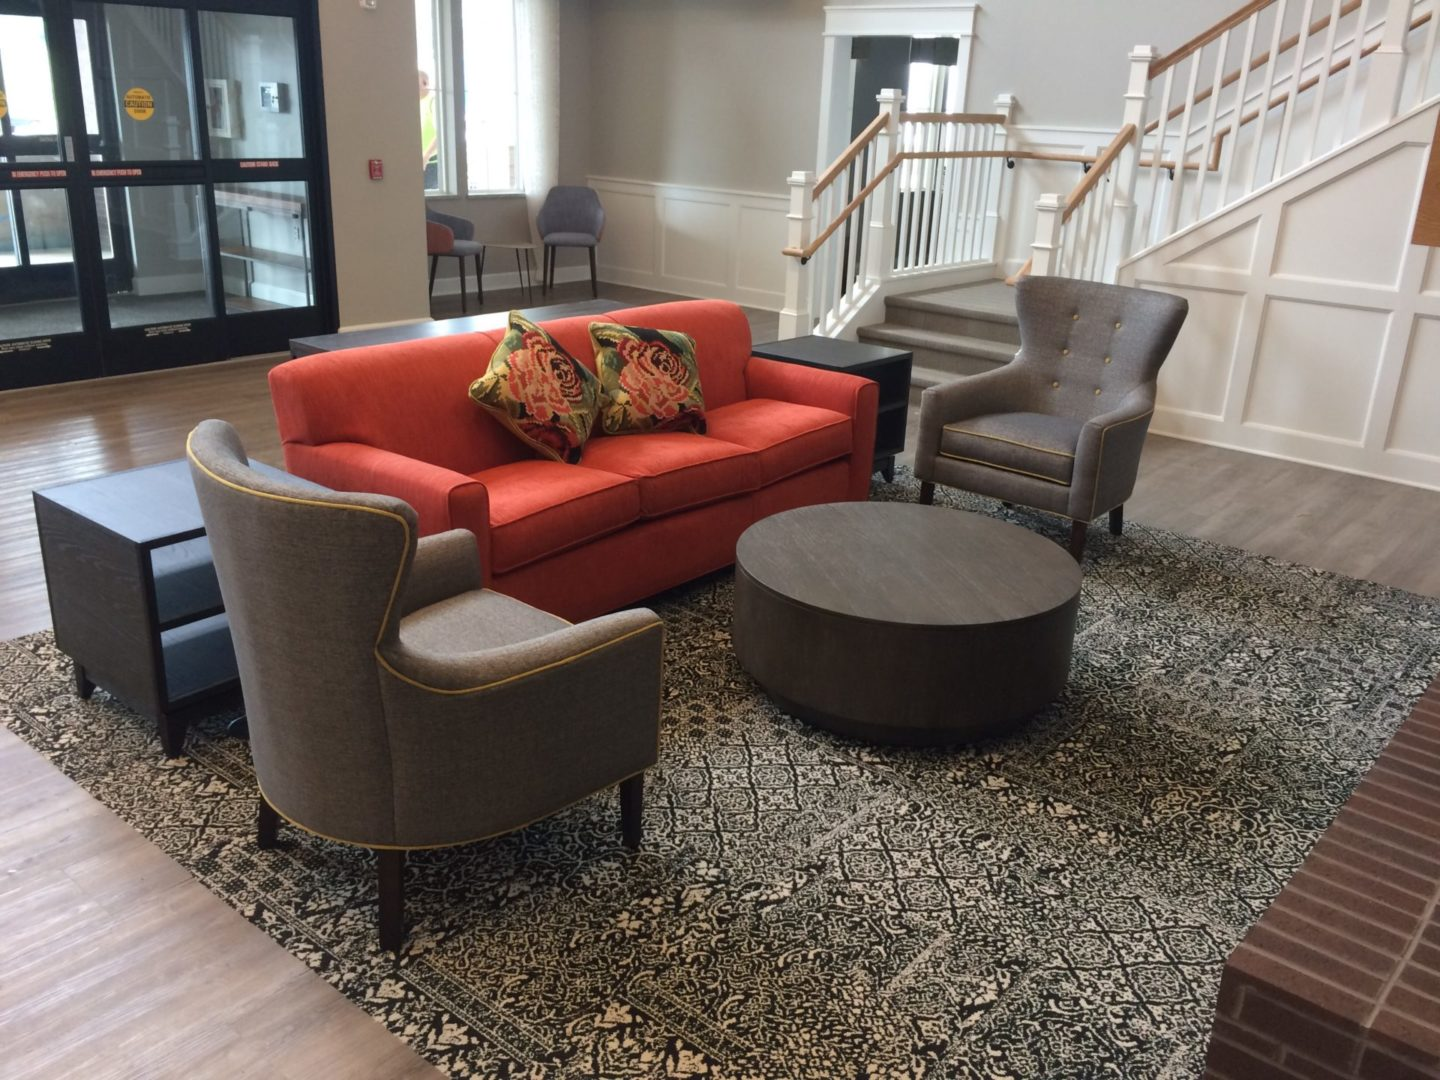 assisted living lobby room